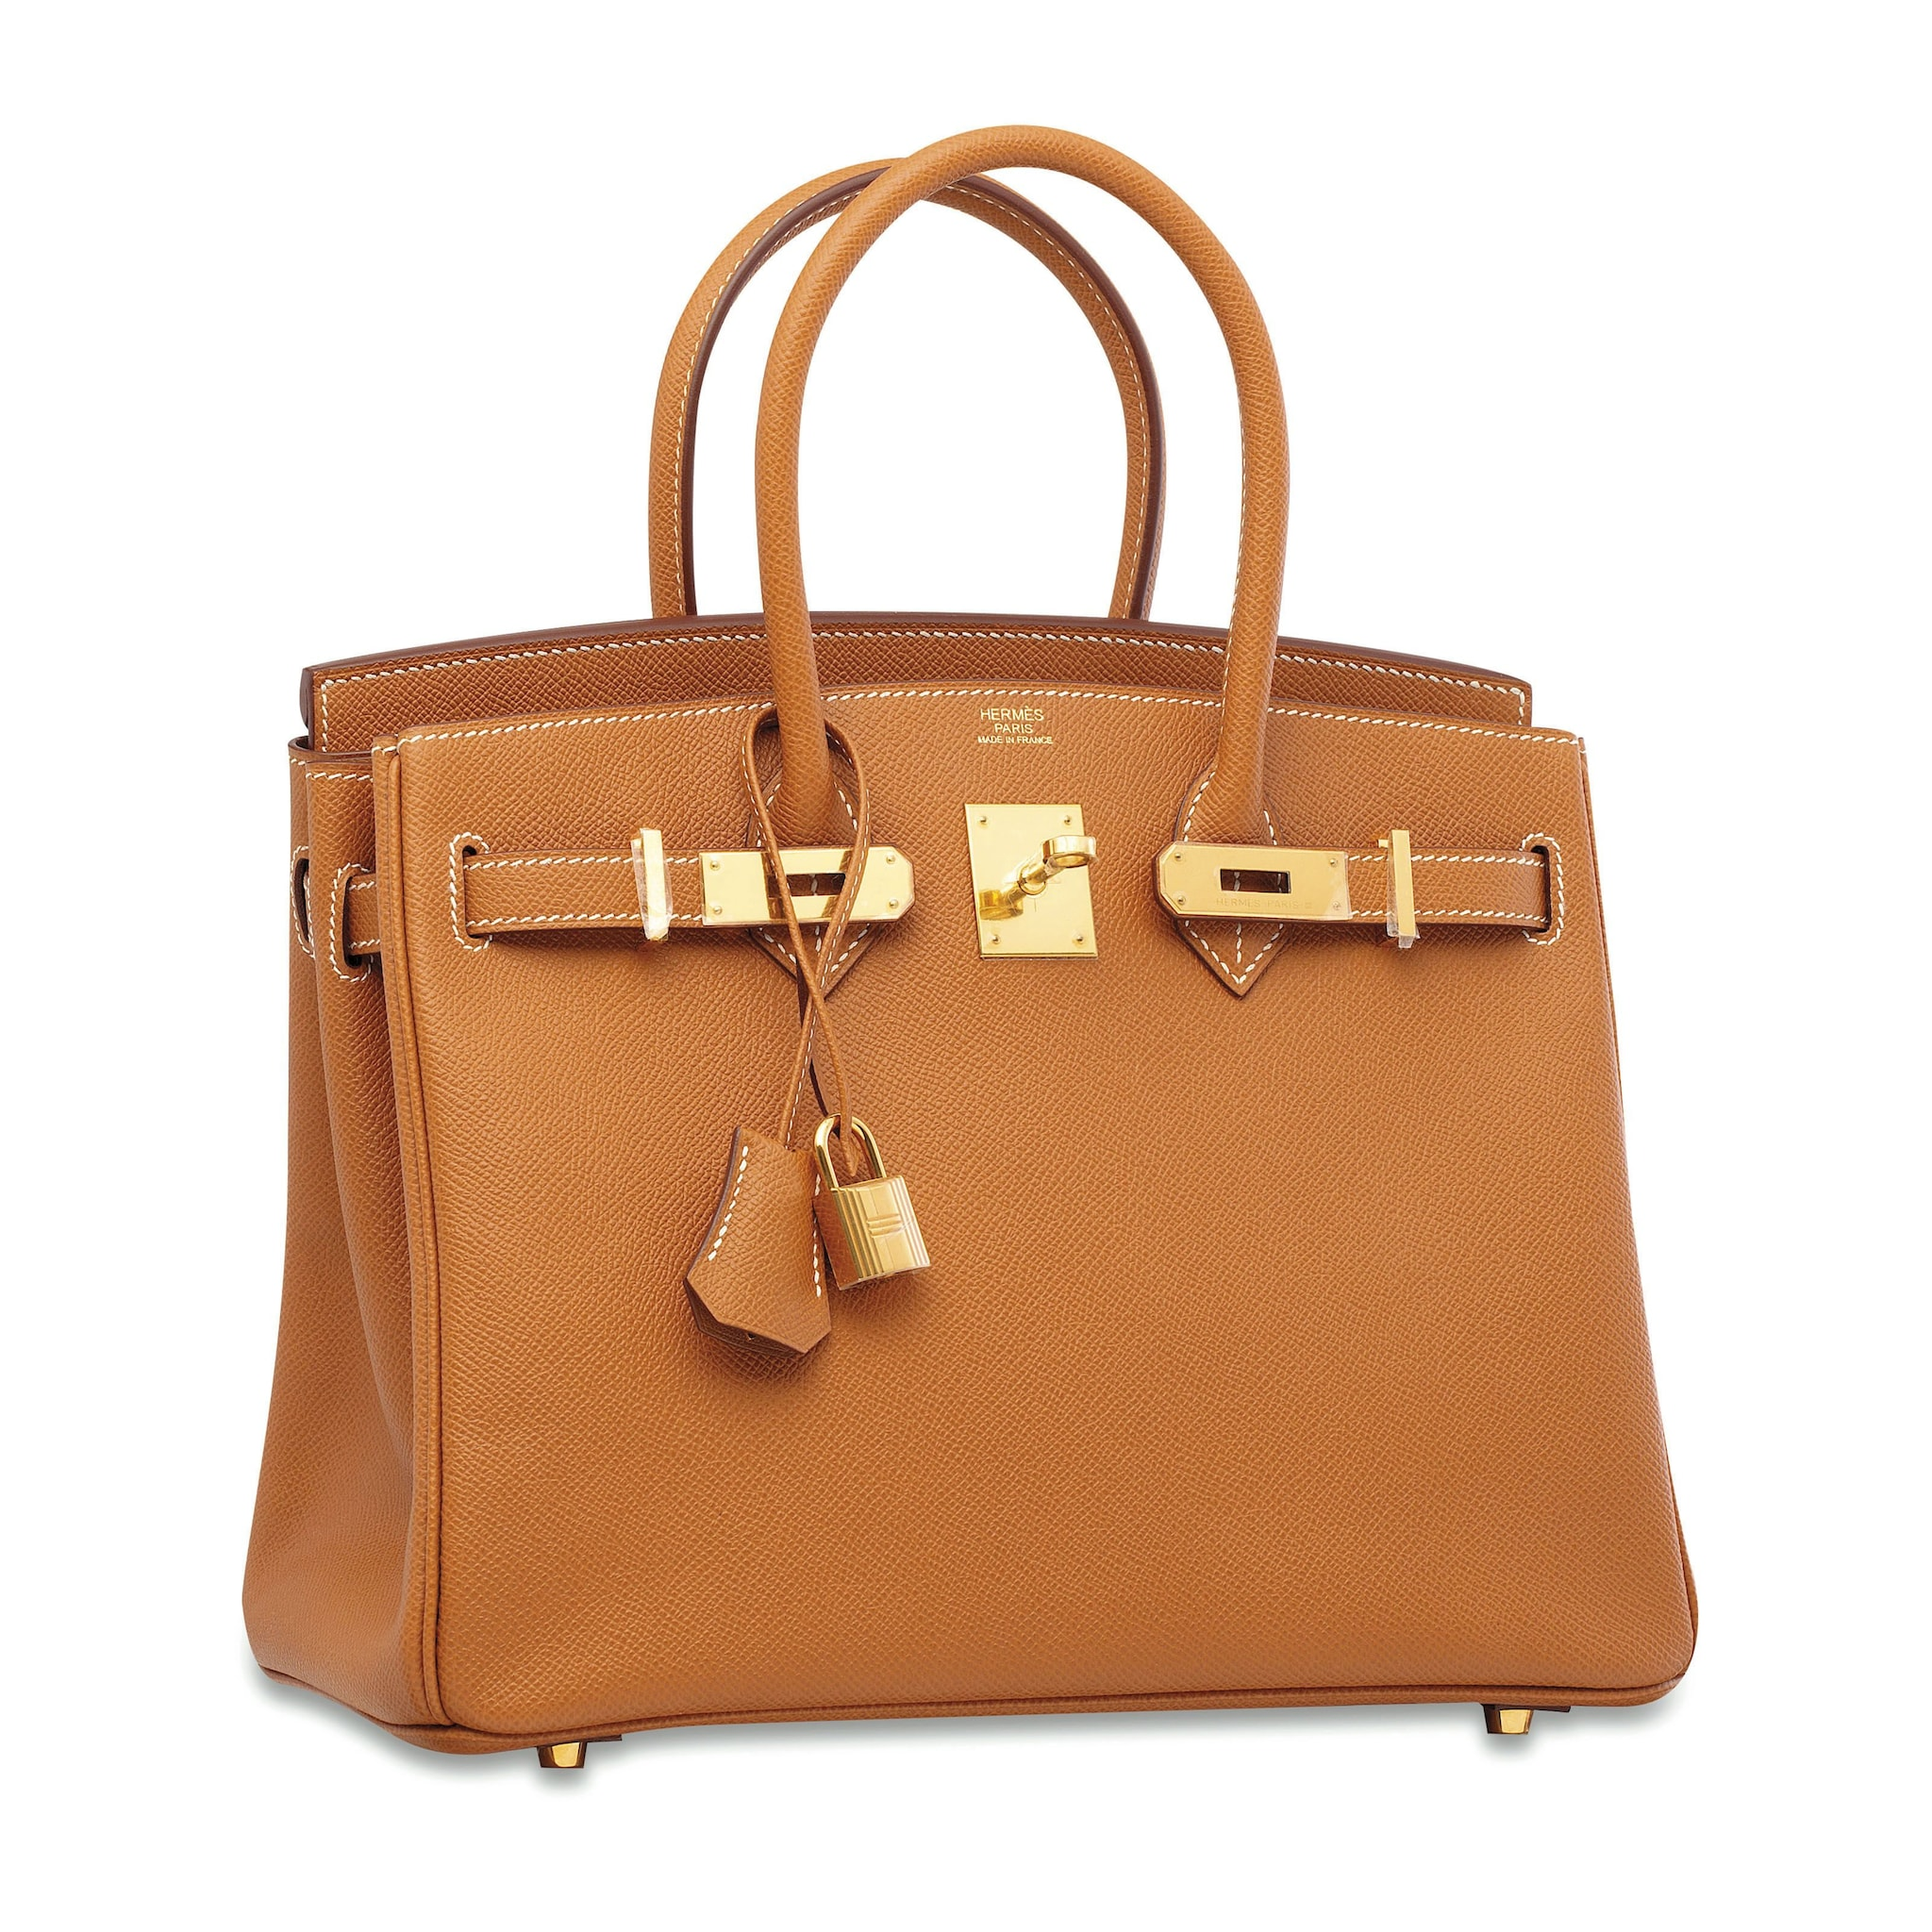 La Leather Camel 30 Birkin bag